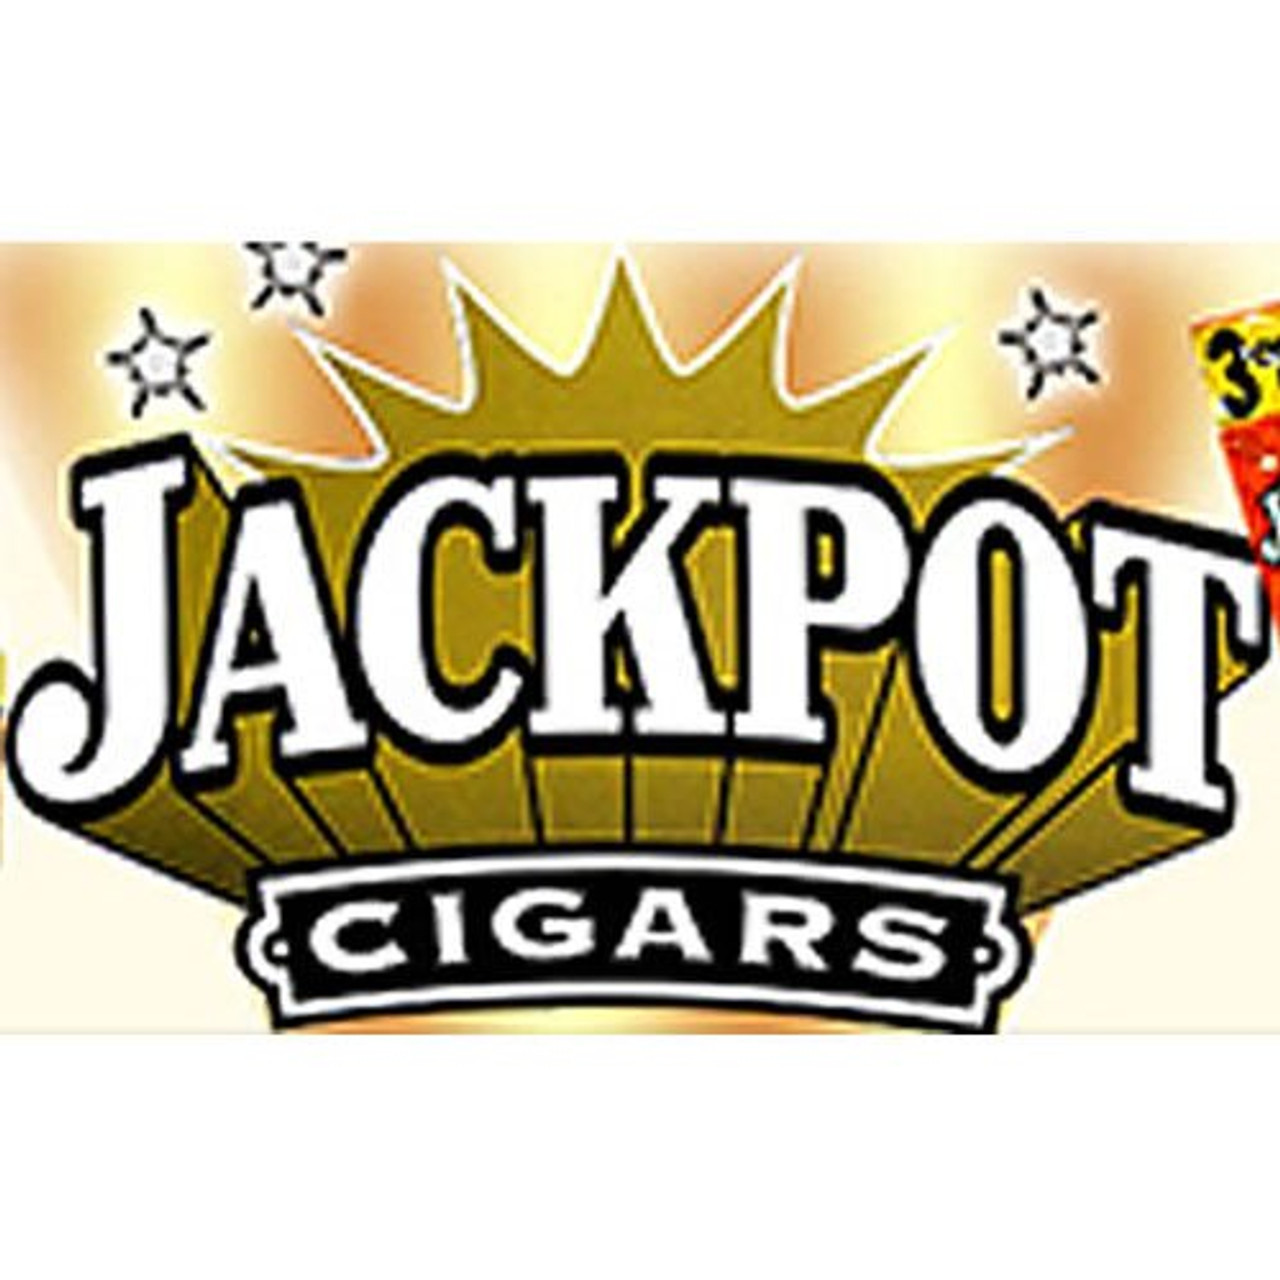 Jackpot Cigarillo Pineapple Cigars - 4.69 x 28 (15 Packs of 3 (45 total))